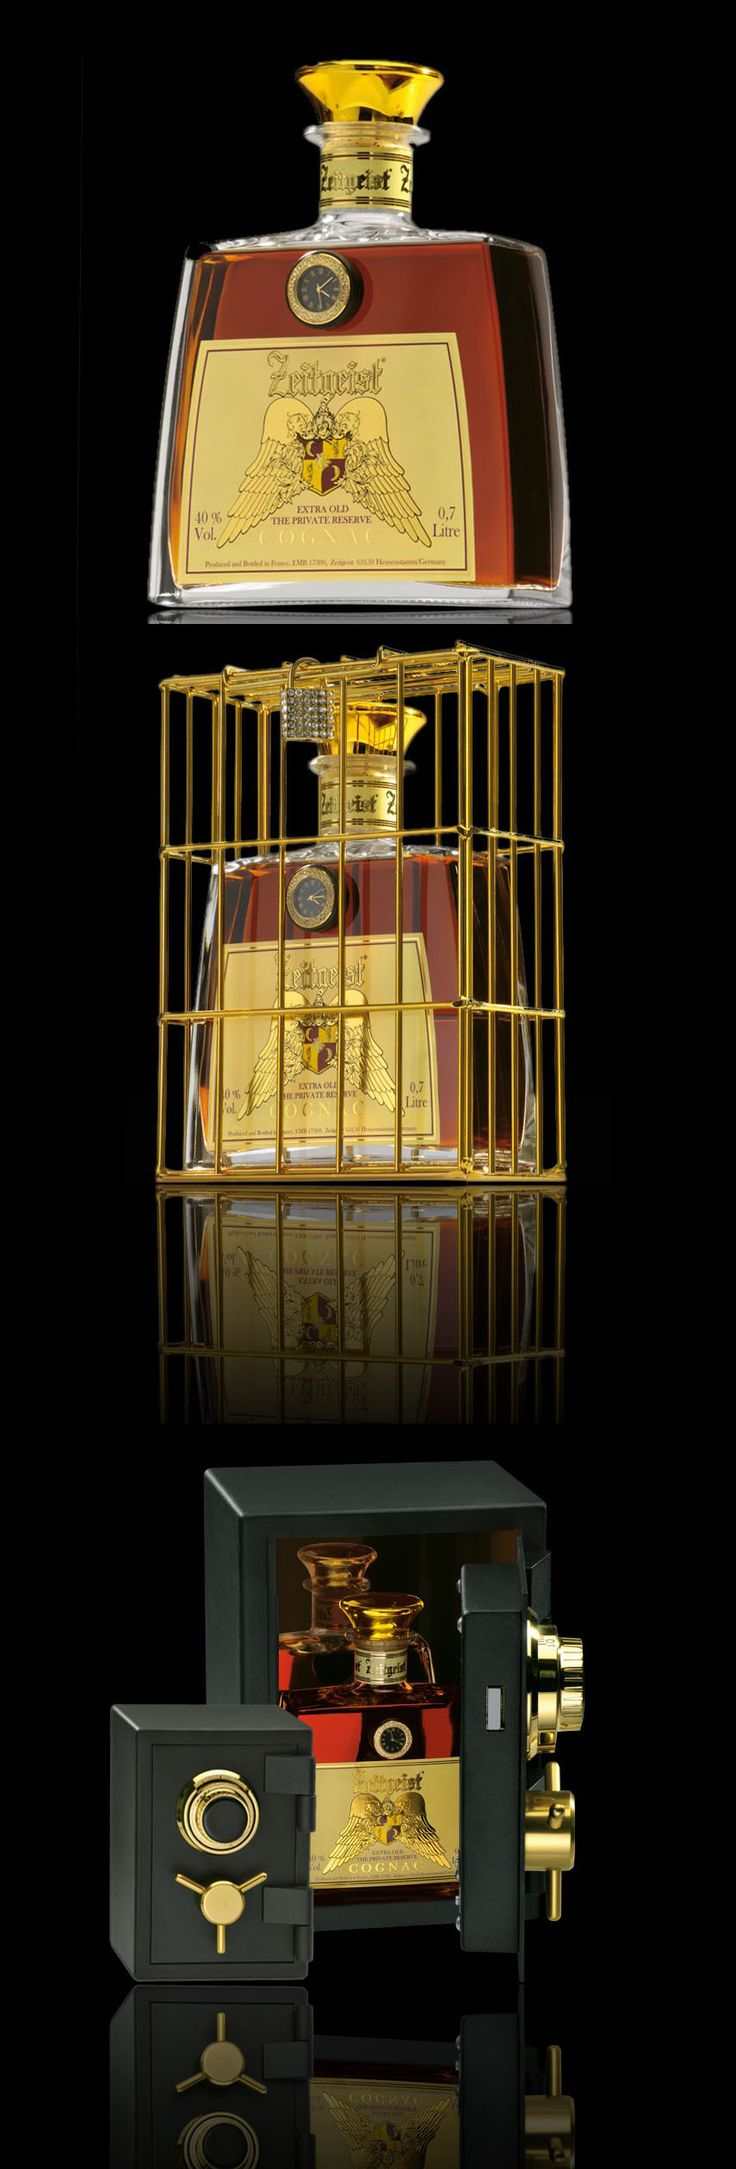 Zeitgeist Cognac comes in a 14k gold gilded cage with Swarovski crystal padlock or a safe.